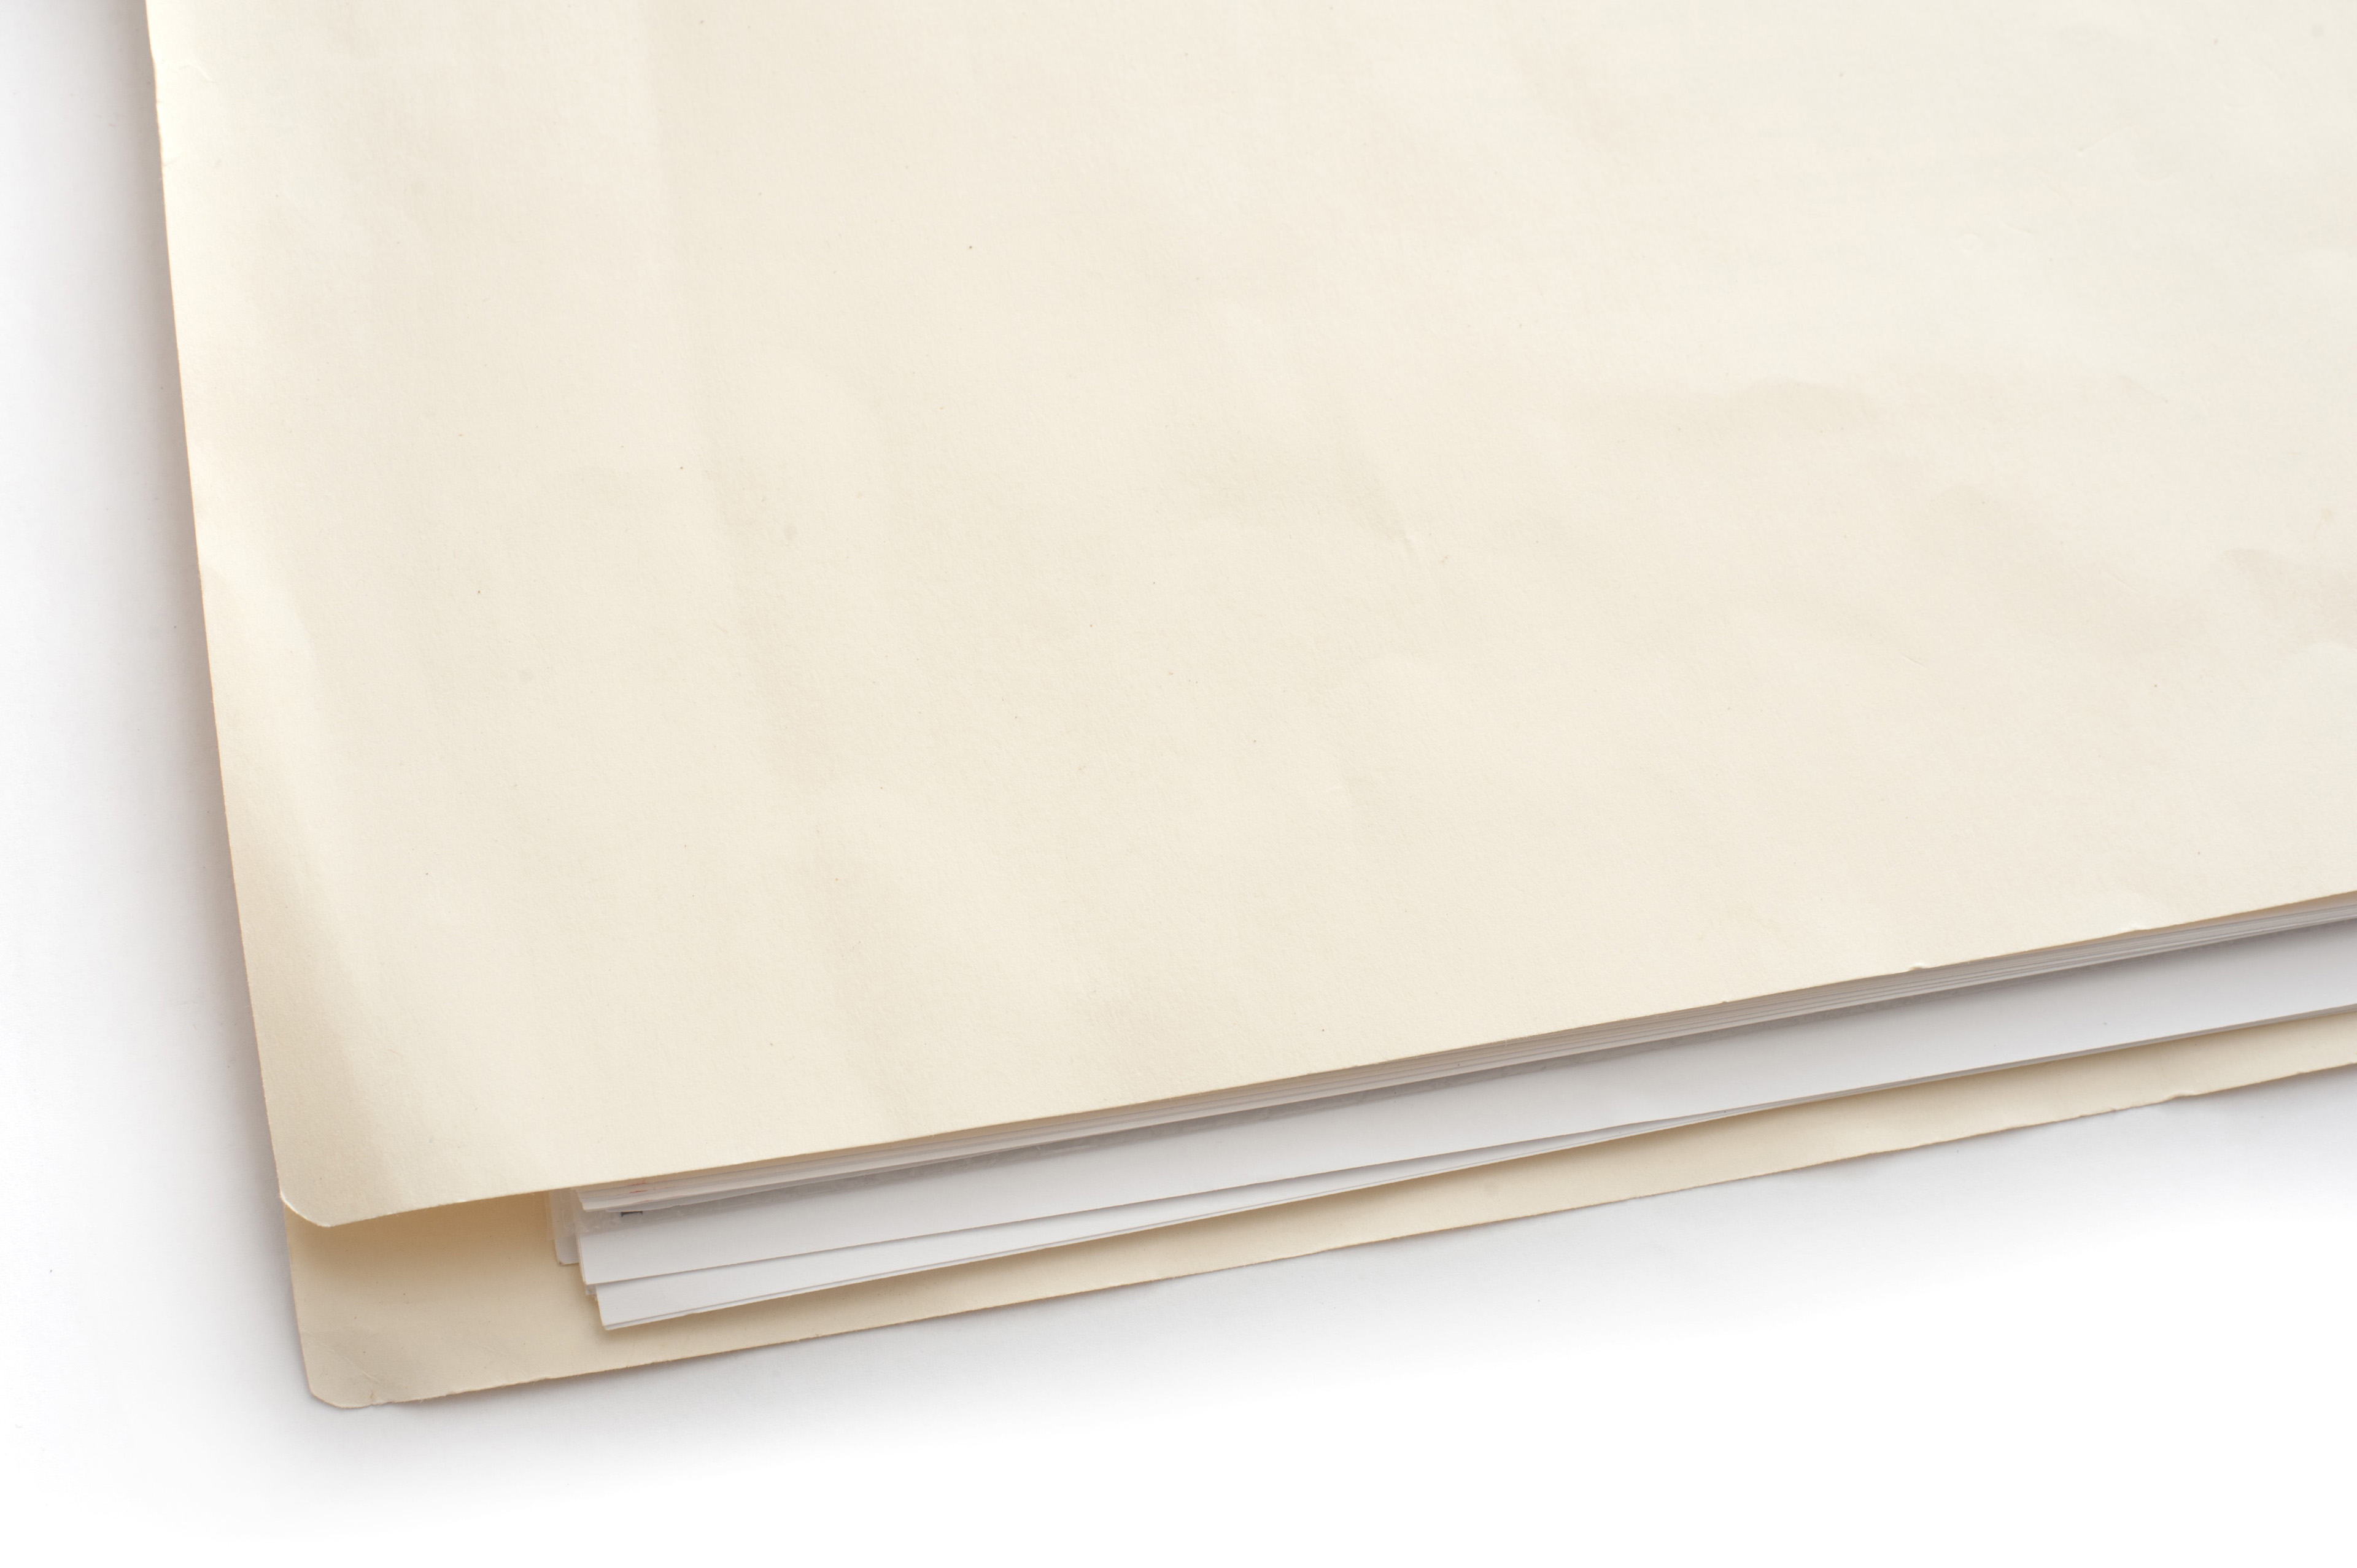 Close up Light Brown Folder with Documents Inside on White Table, Emphasizing Copy Space for Texts